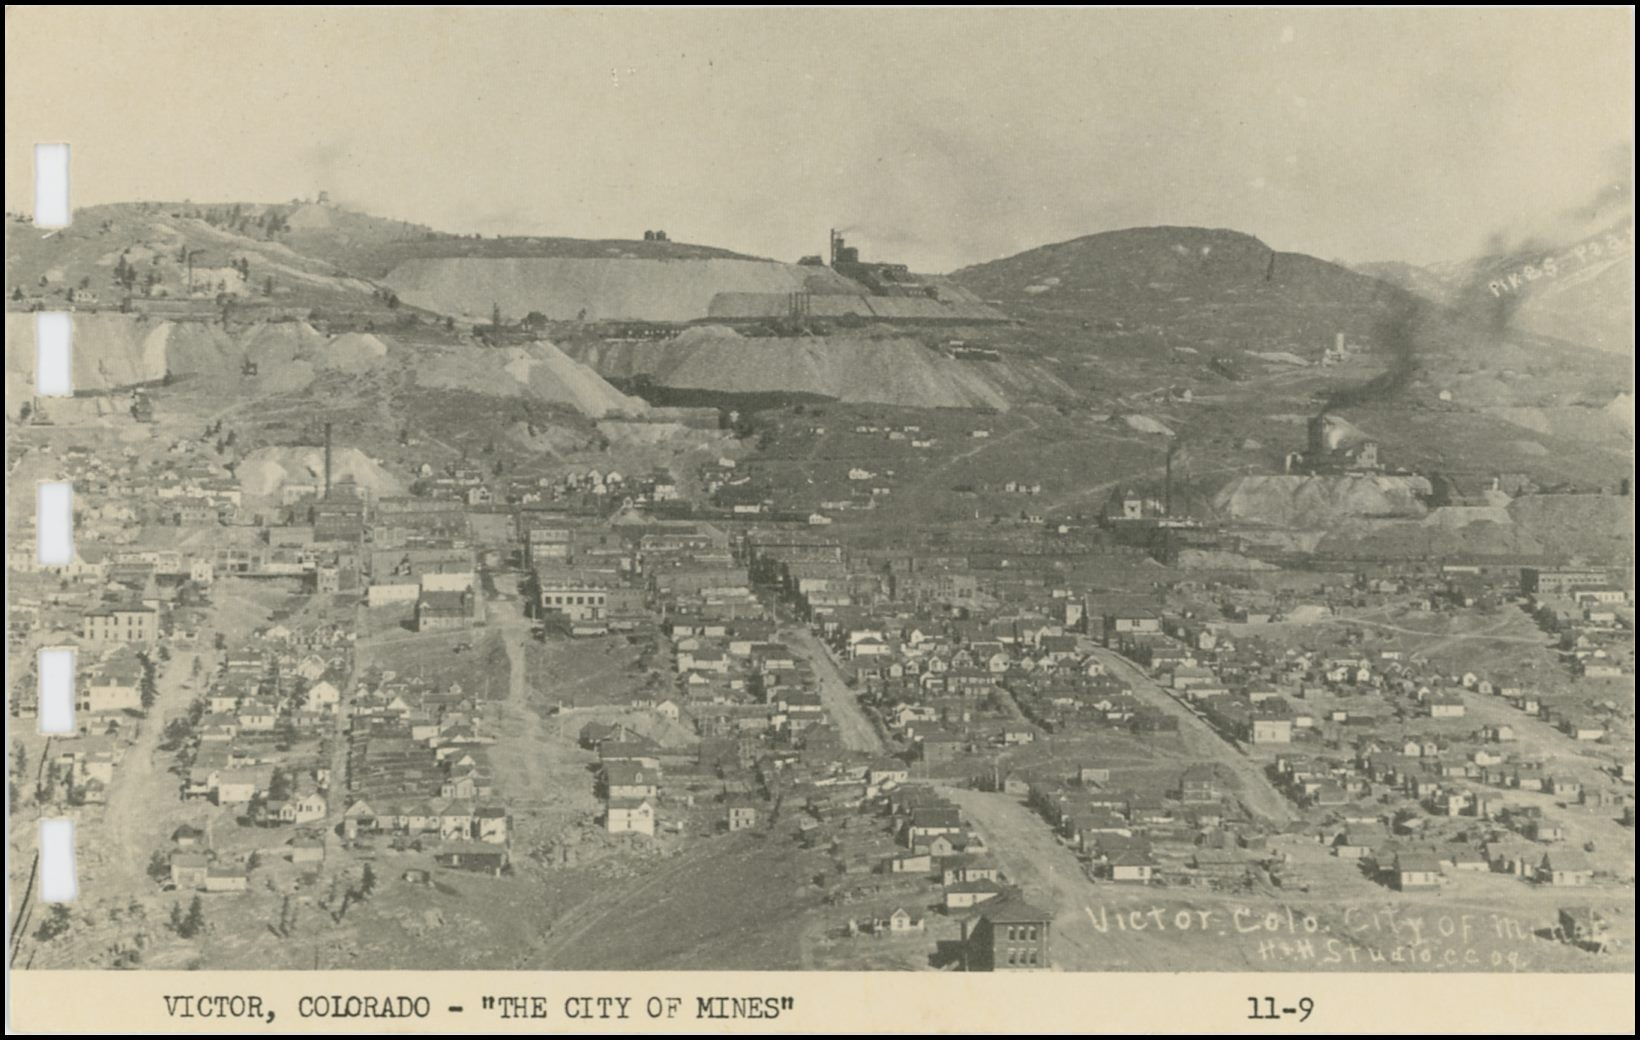 This view of Victor is looking north from Straub Mountain area. Photographed in 1909 by the H. & H. Studio in Cripple Creek, it was taken by either Hileman or Hill, impossible to tell for sure as the view is credited to them both. Being this is from a printed card in a small more modern postcard folder it is not the greatest quality, but one gets an idea of the town and the many mines in and around it. * Gold Coin, here marked as Granite Mine on the south facing ore-house, is seen about middle top/down and about 1/5 in from left-hand side. * Just behind the huge smokestack of the Gold Coin is the main shaft of the Dead Pine, named Oliver Shaft for some reason. The dump is much easier seen then the mine itself. * Straight up from the Gold Coin smokestack, in the distance; against the sky; sticking up from the hill, is the shaft-house of the American Eagle. * The Ajax Mine is about 1/4 down from top left, about 1/6 on from left-hand side. * Further to the right of the Ajax would been upper shaft of the Dead Pine, the Granite (original shaft/mine) – seen about 1/3 in from left-hand side – and the Burns (main) shaft of the Portland mines, with the Portland No. 2 seen just off to the right for the center of the upper quarter in this view. * Towards the right-hand side is seen the Strong Mine, about half top/down and 2/3 in from the left-hand side. * The Independence Mine is just right of the Strong mine, seen with its huge dumps and structures. * The Vindicator Mine, shaft 1, is seen above the Independence mine, about 1/3 down from top.